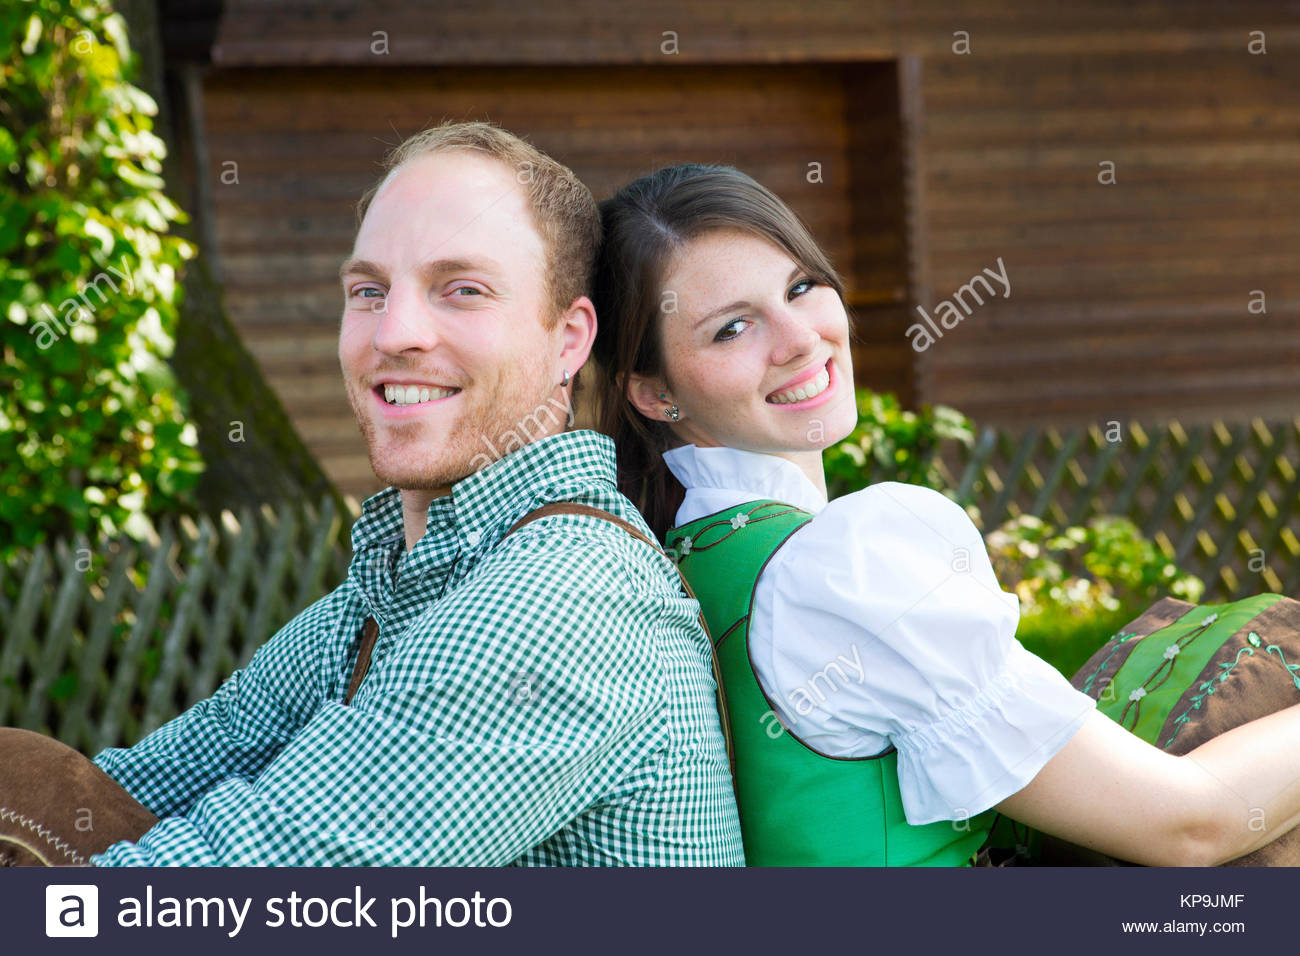 bavarian couple leaning against each other - Stock Image